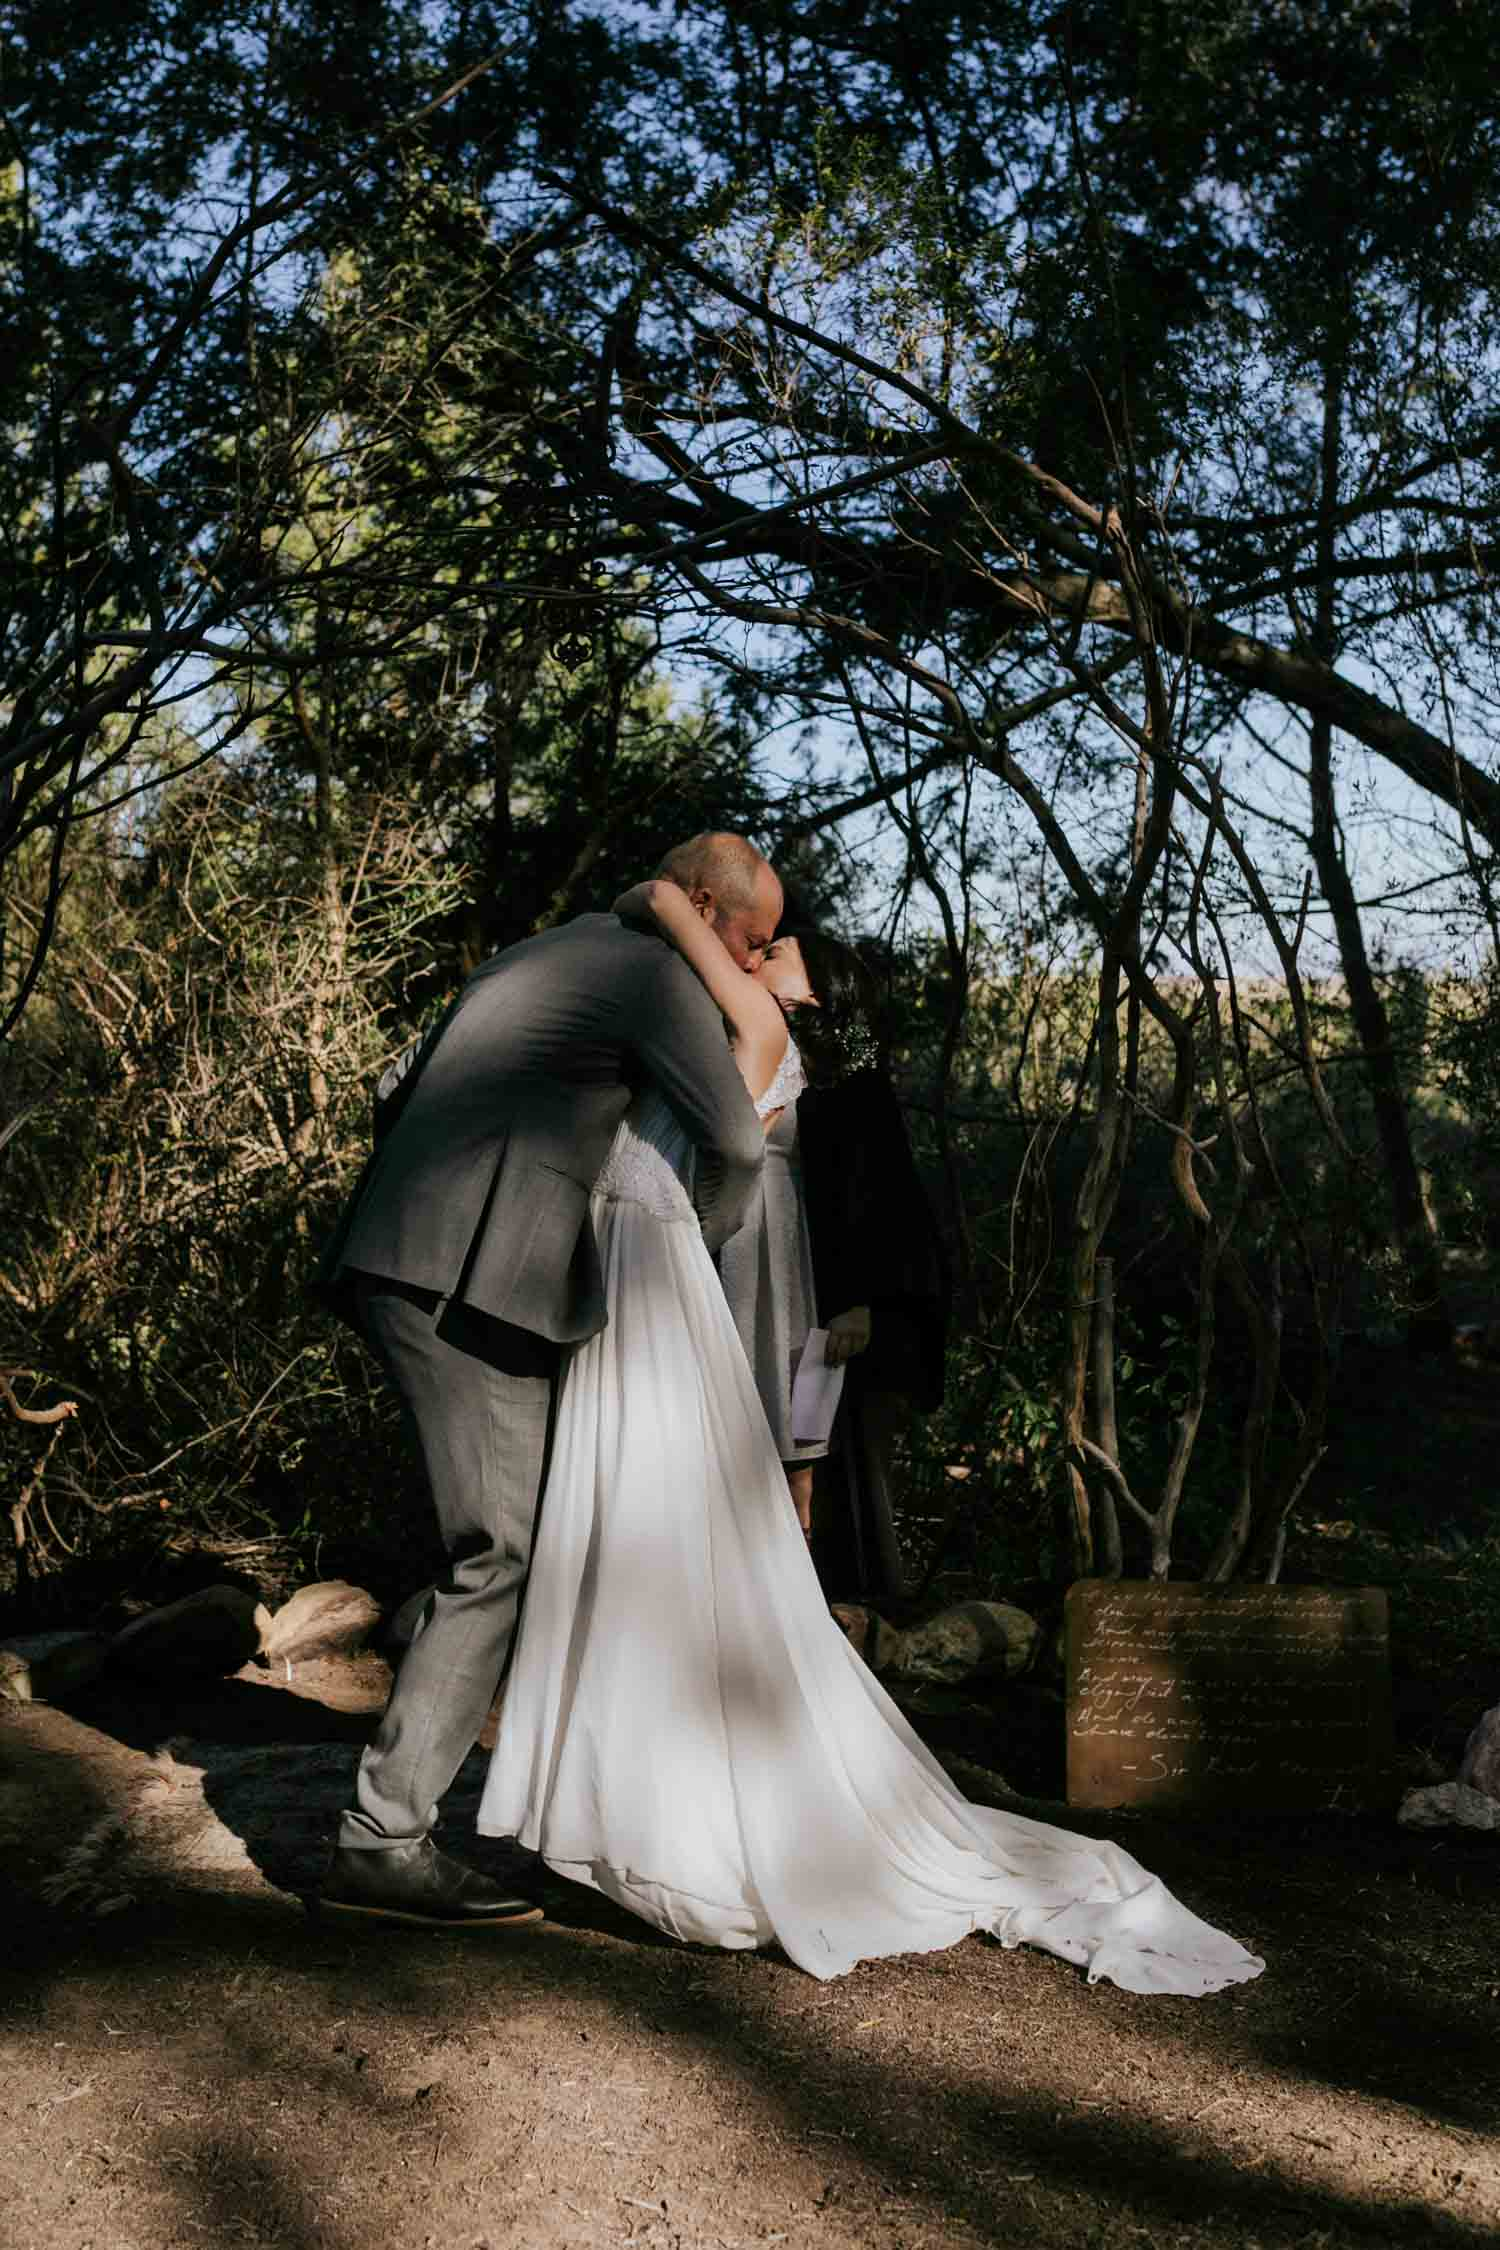 Bride and groom's first kiss in forest on a farm in Tulbagh, Cape Town.